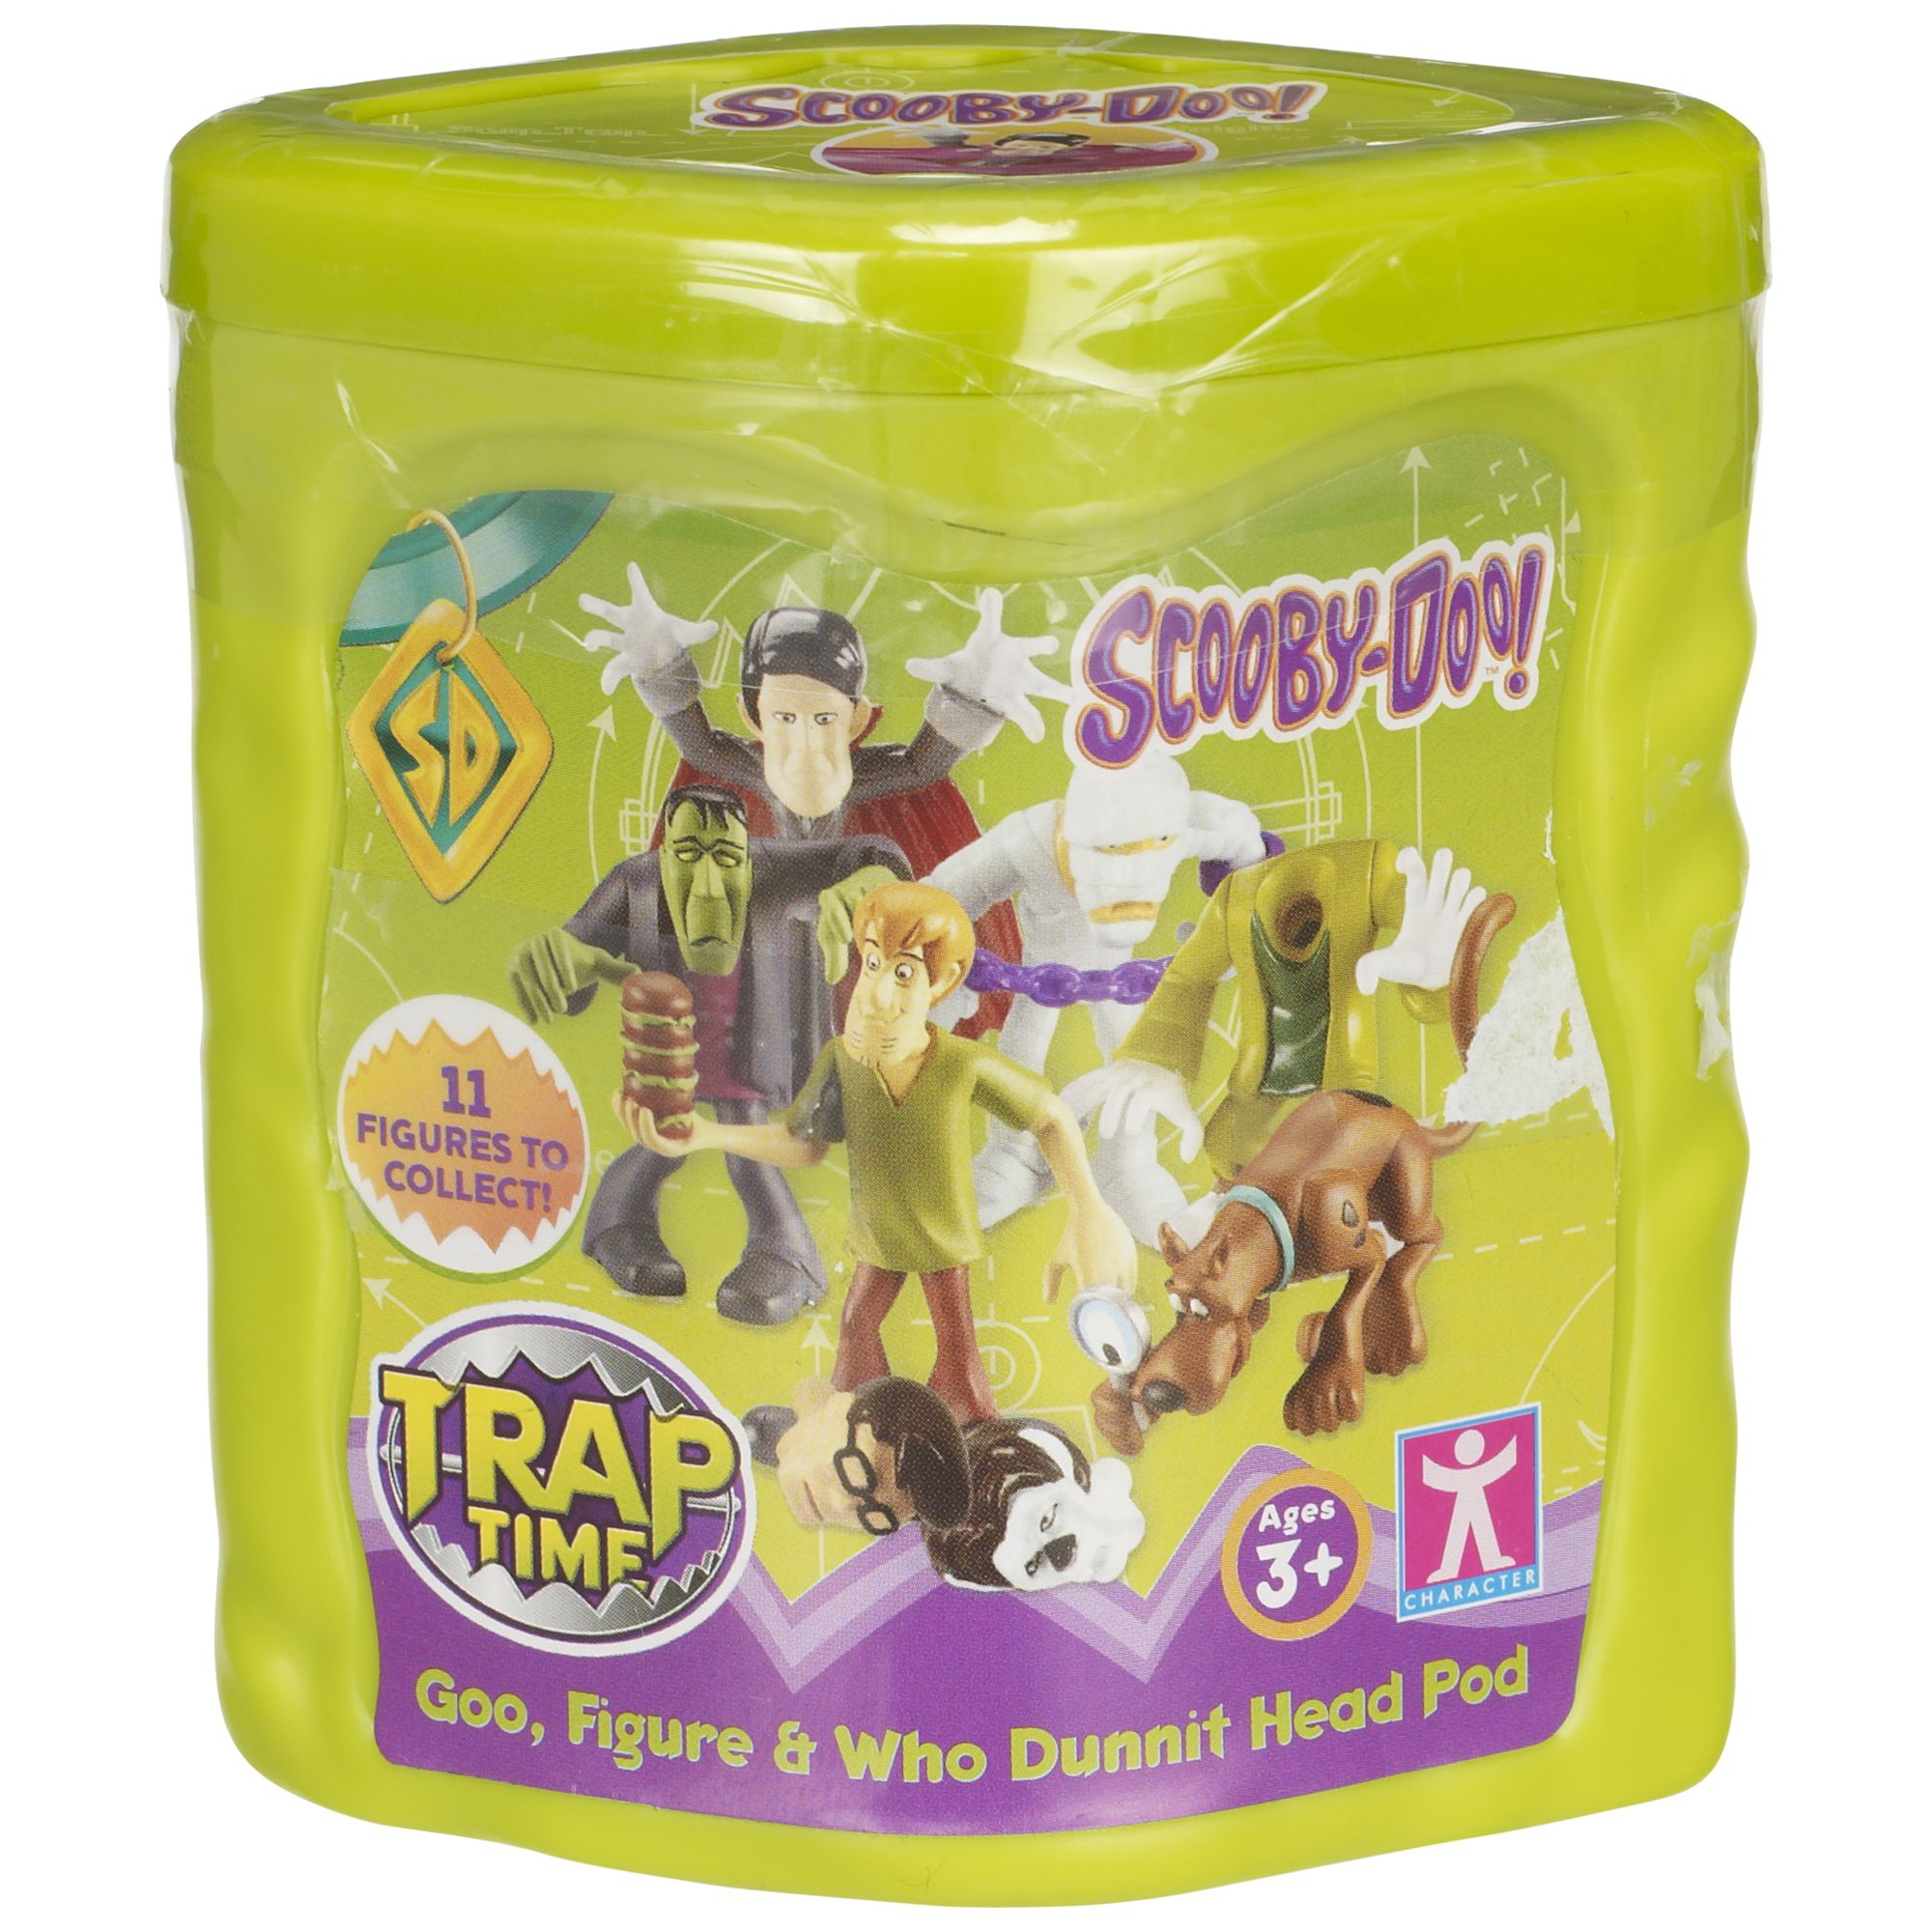 Scooby-doo Trap Time Goo, Figure And Whodunnit Head Pod, Assorted